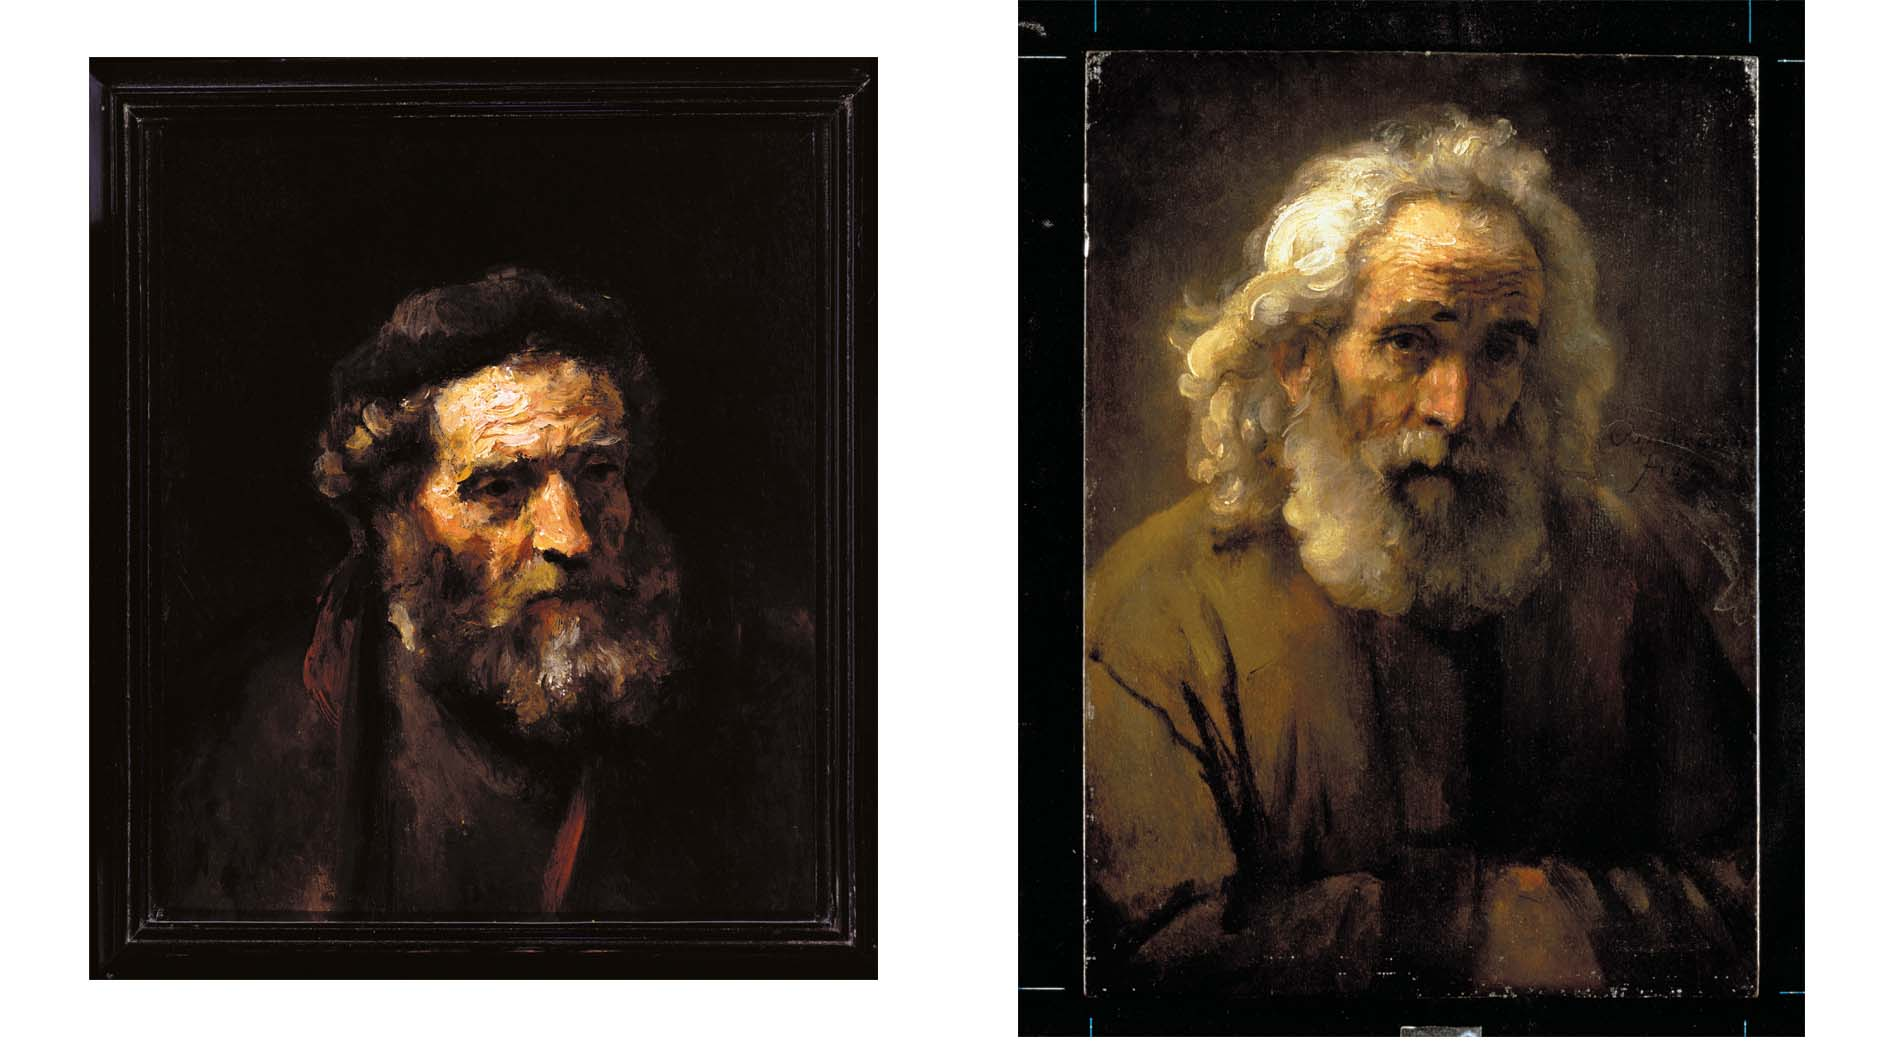 [image of two paintings by Rembrandt or his circle]